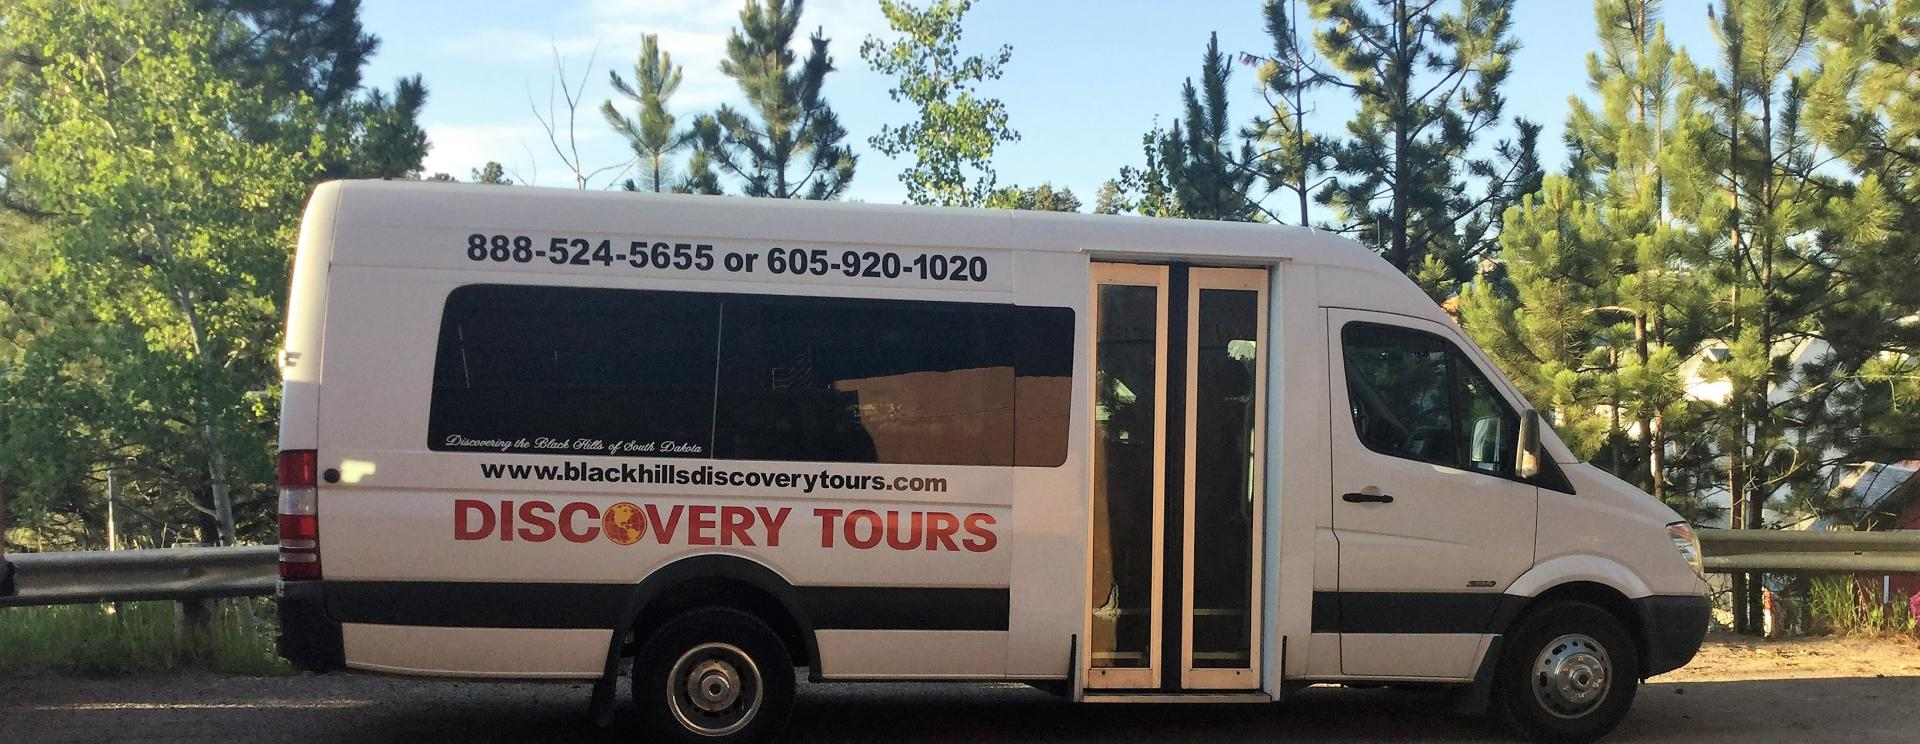 Discovery Tours of the Black Hills